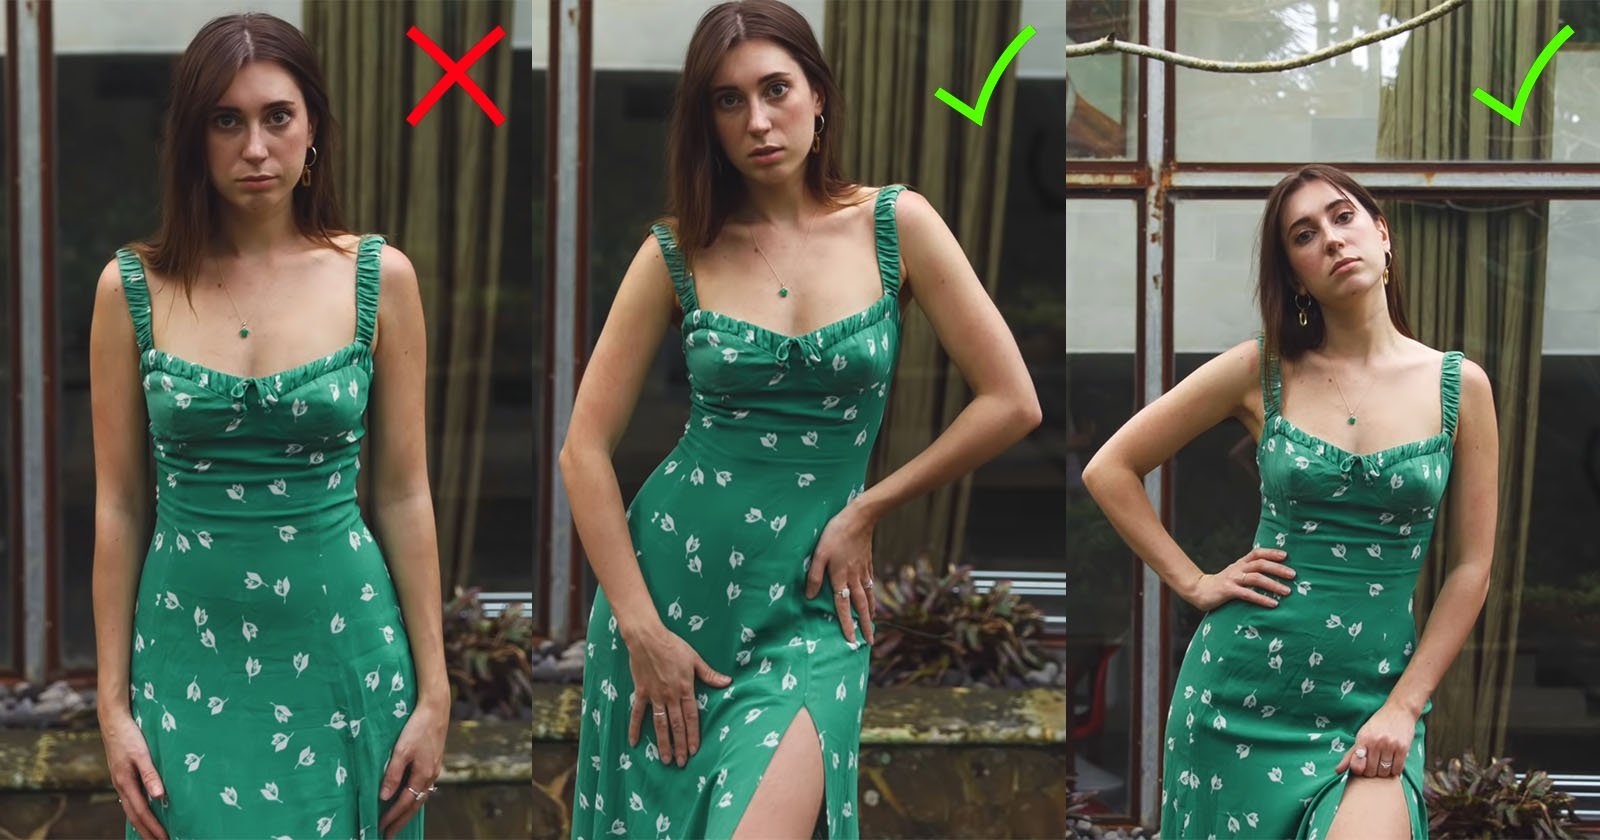 How to Pose Women Who Aren't Models